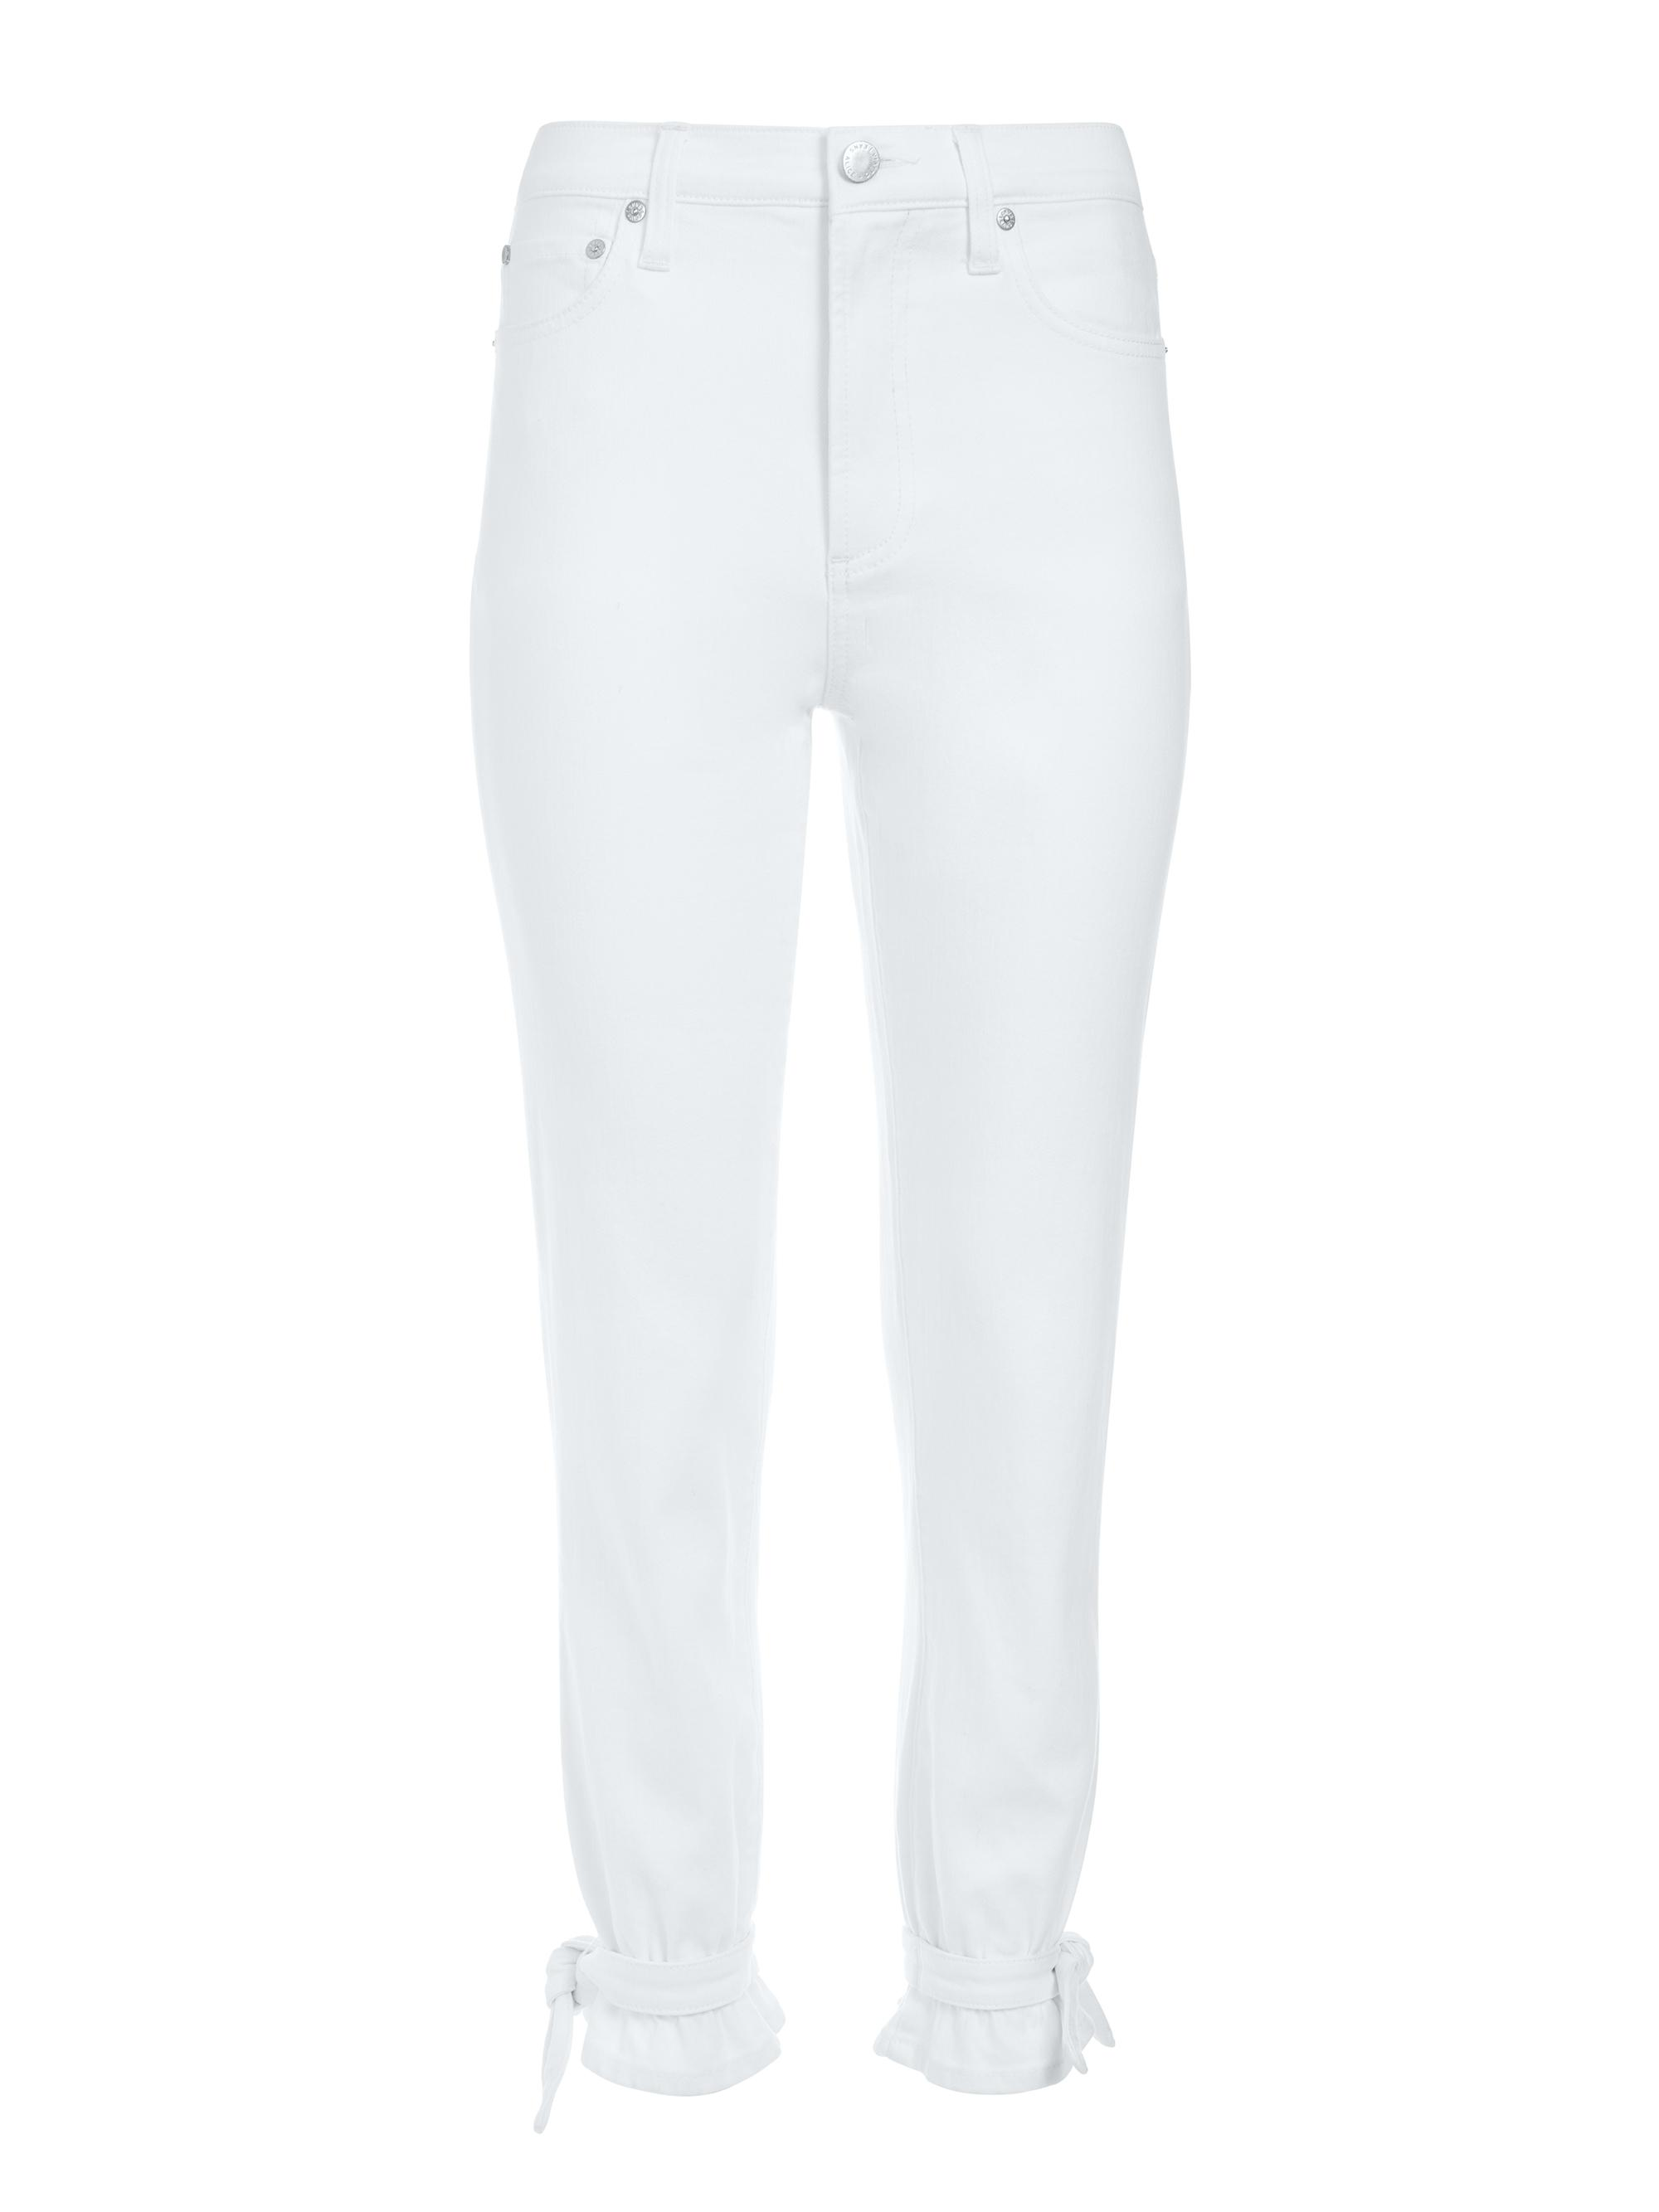 AMAZING HIGH RISE TIE PANT 5